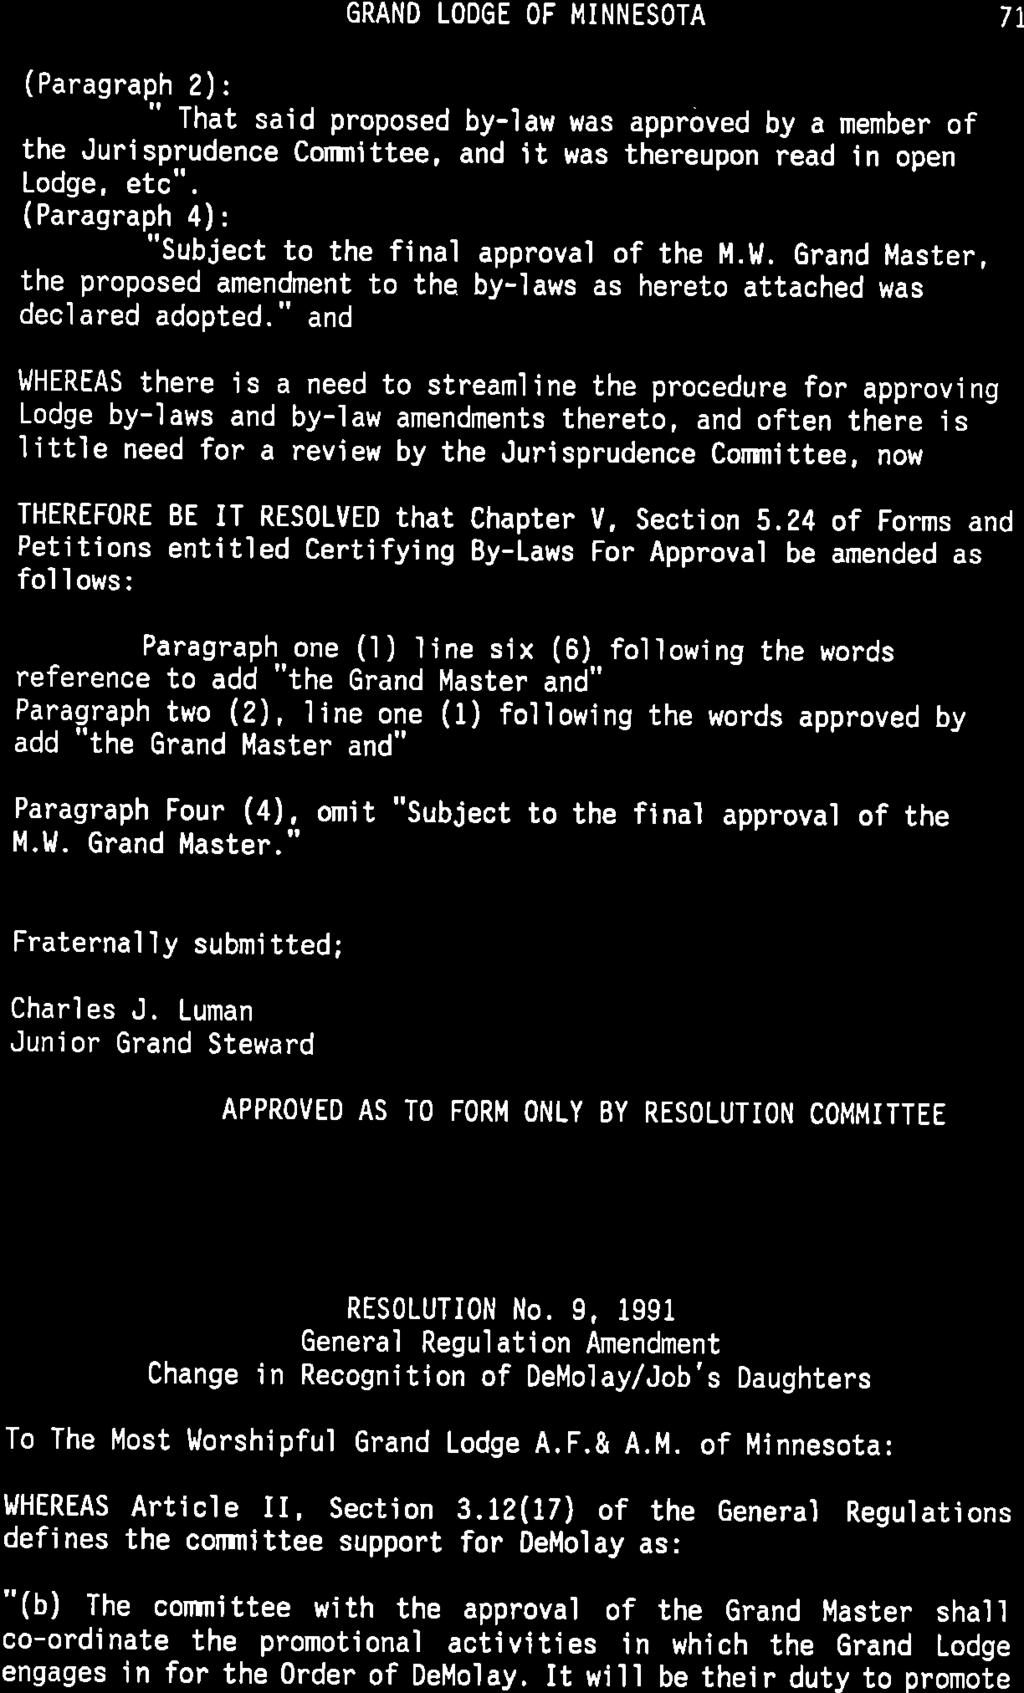 Grand lodge of minnesota pdf grand lodge of minnesota 71 paragraph 2 that said proposed by fandeluxe Gallery